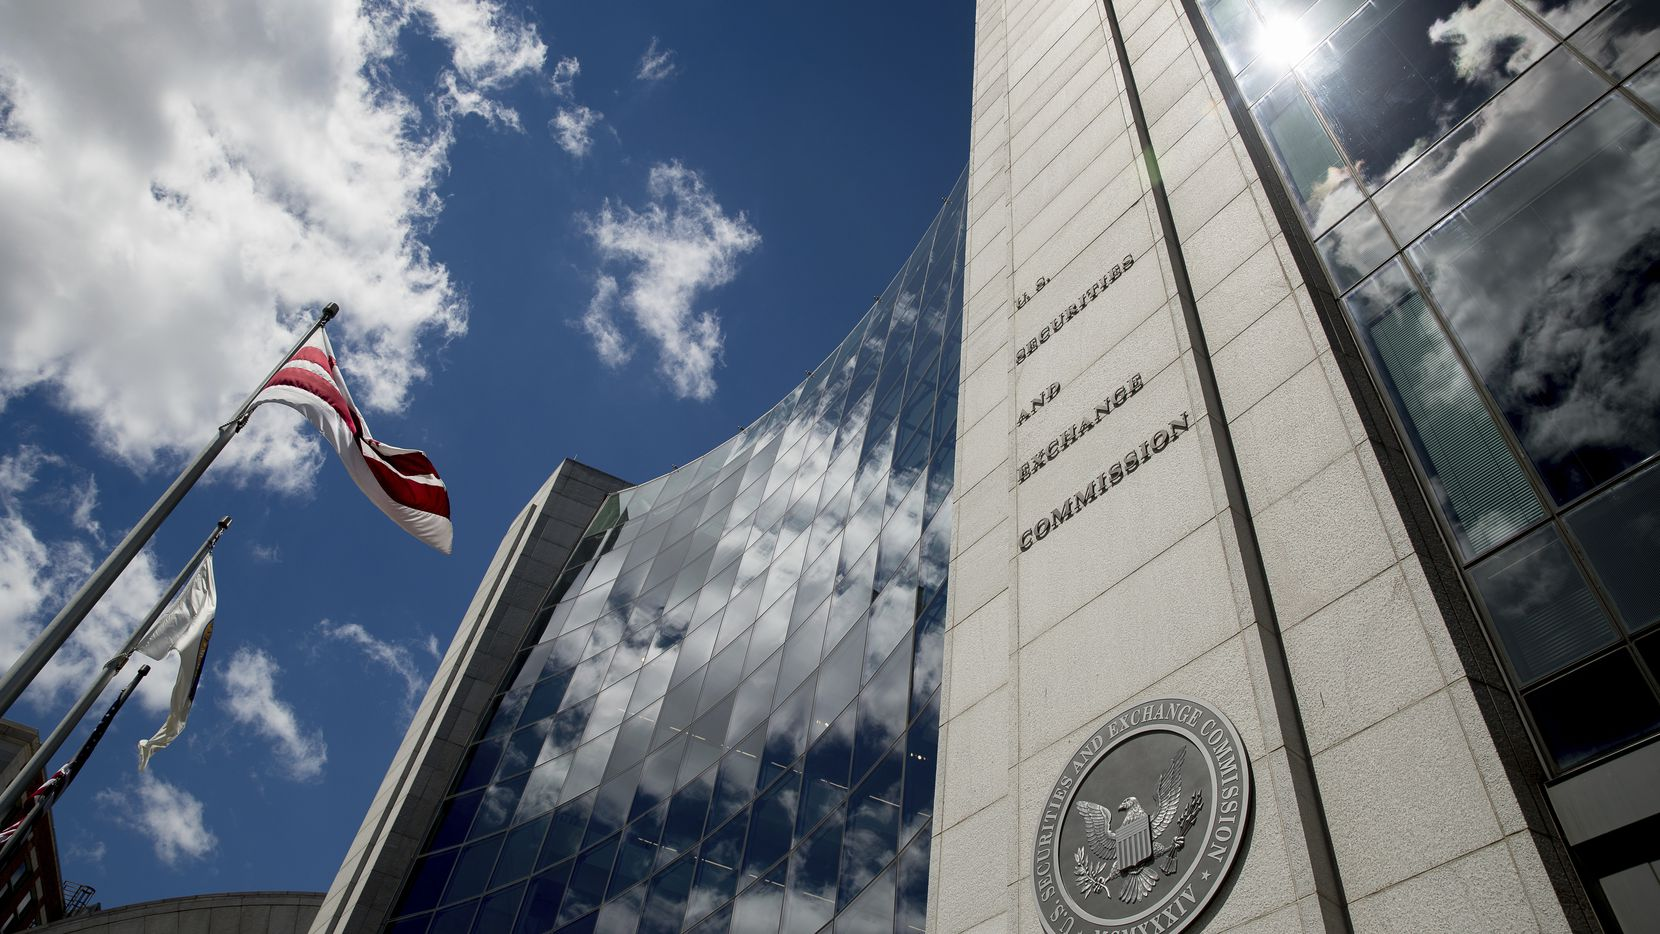 U.S. Securities and Exchange Commission building in Washington.